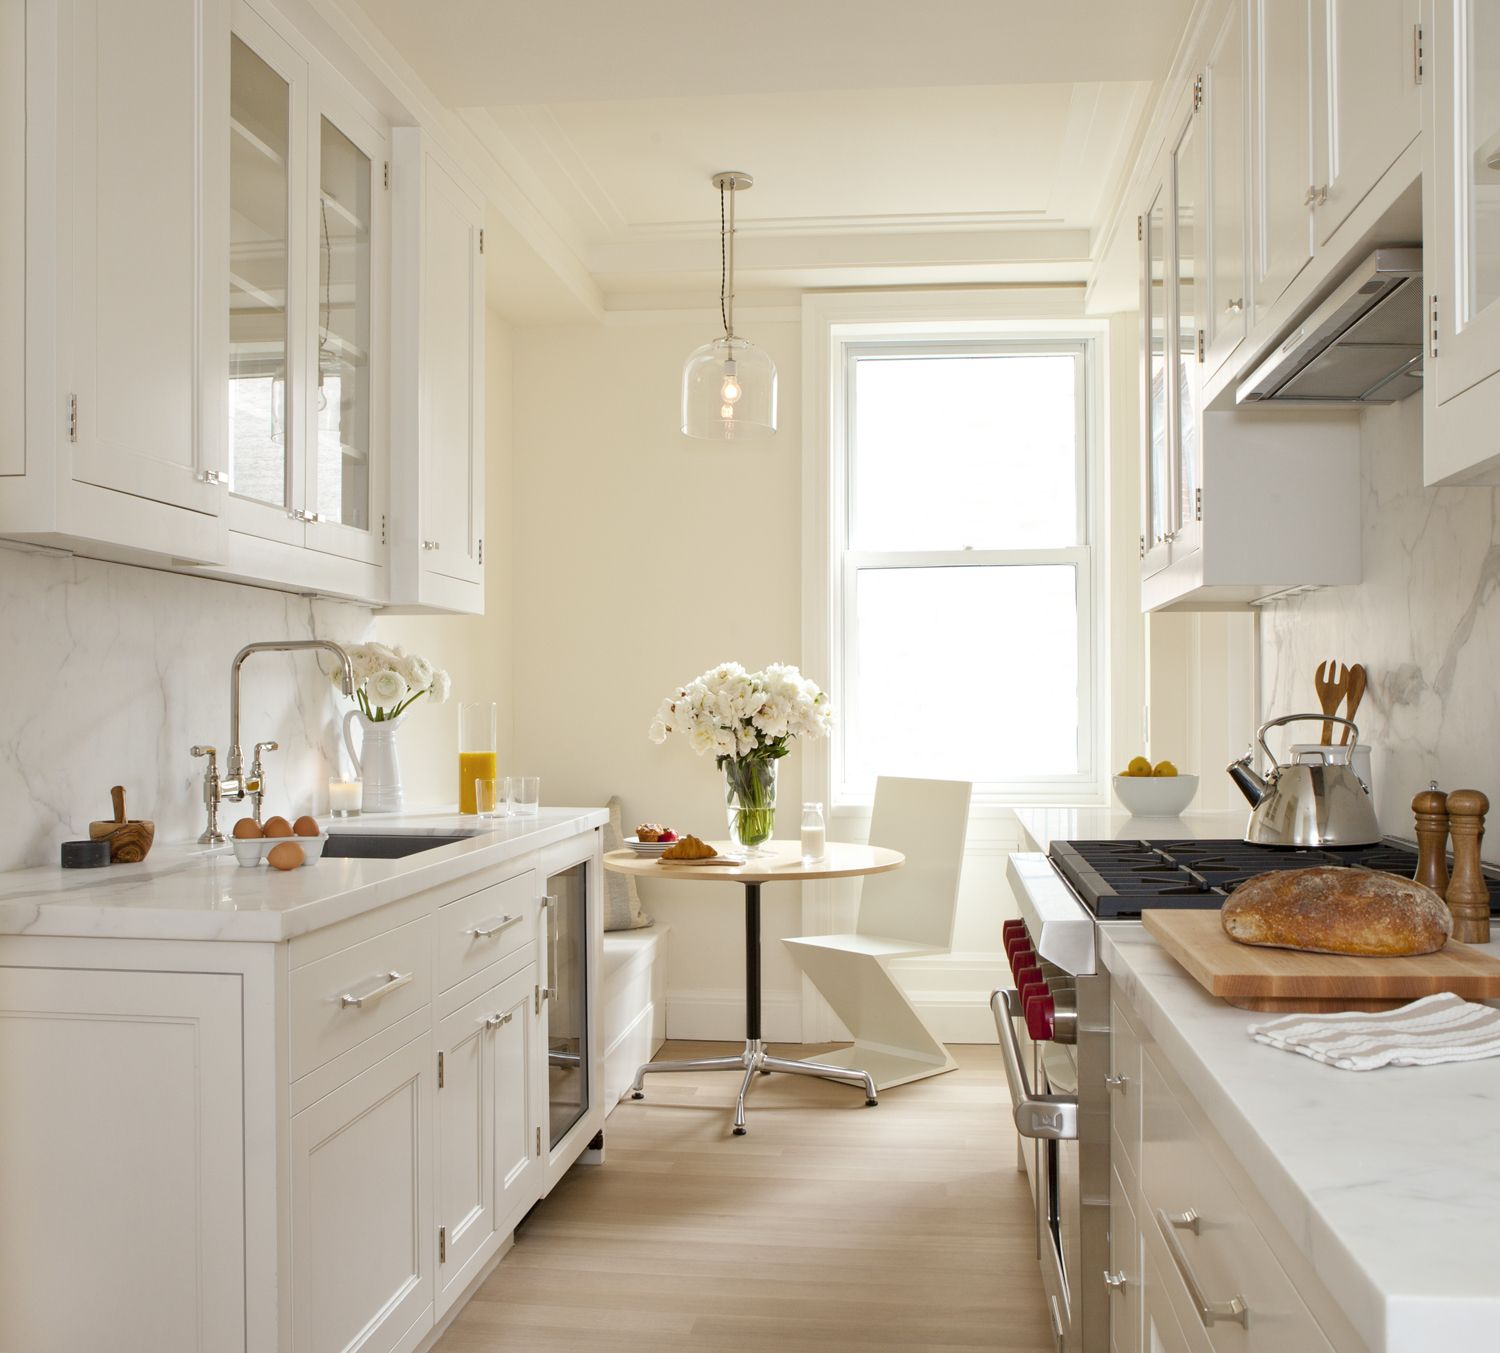 My Galley Kitchen Reno: Pin By Alyssa Kapito Interiors On Alyssa Kapito Interiors